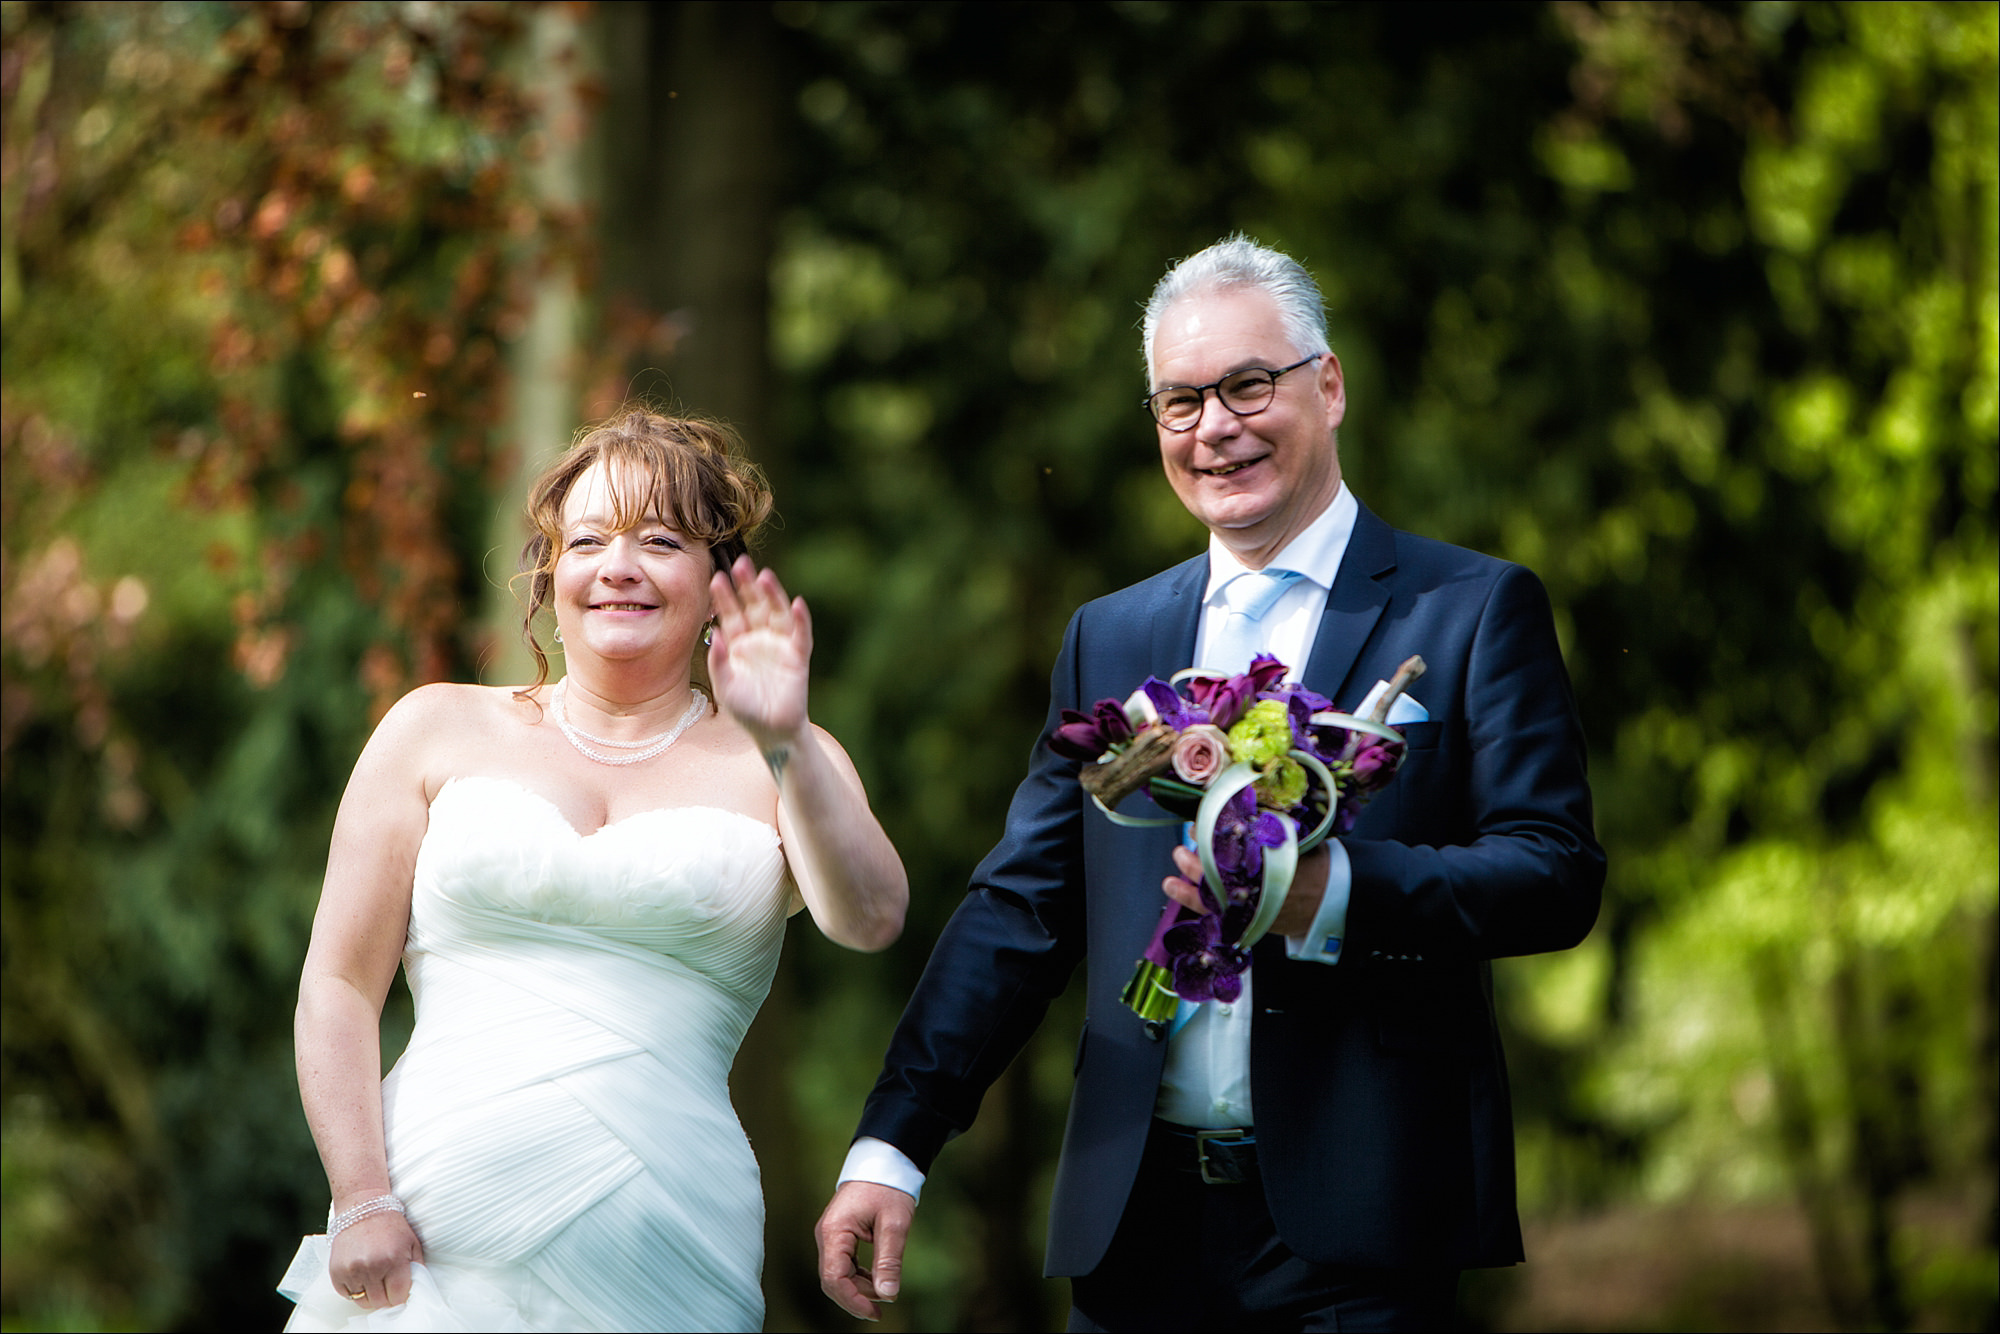 wedding photographer dublin david duignan photography real weddings Ireland 29